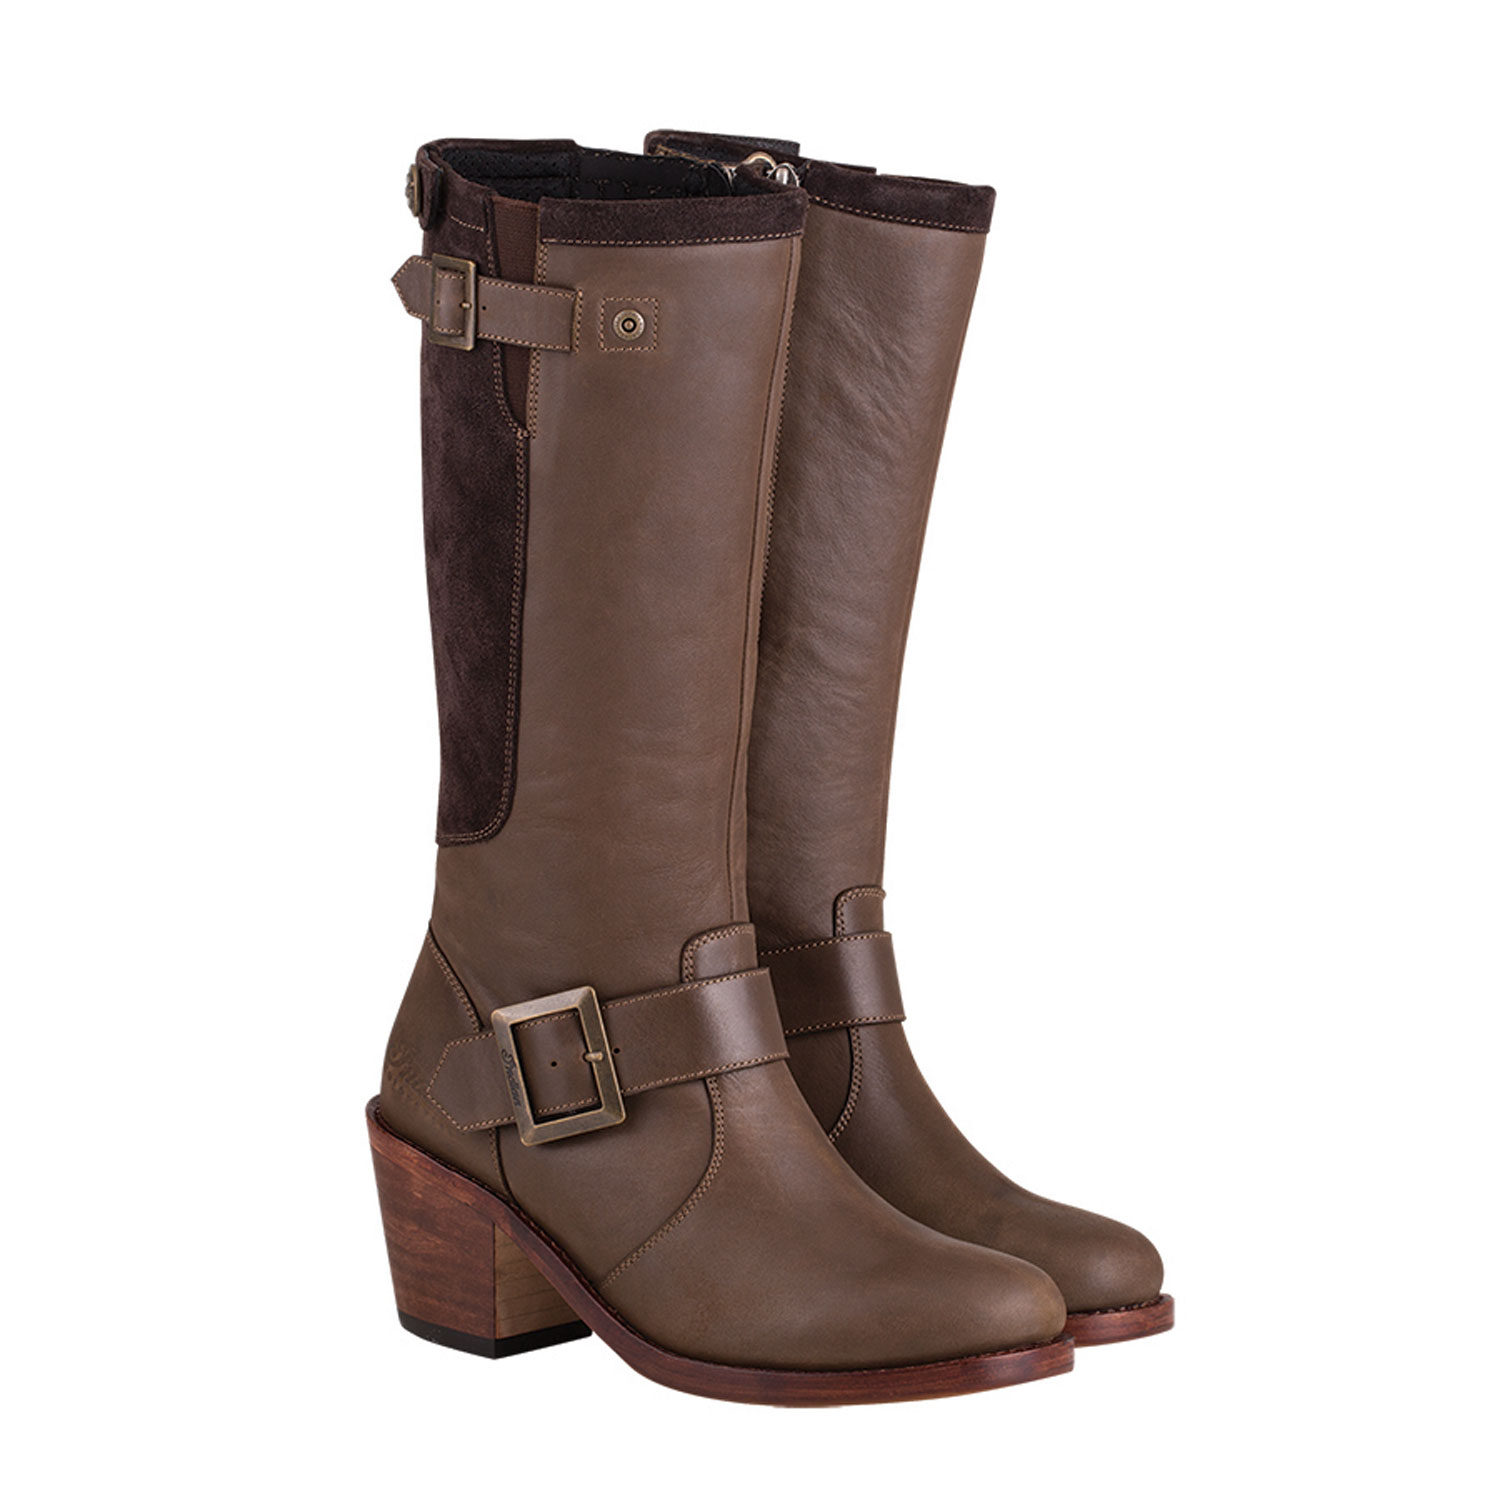 Women's Brown Tall Engineer